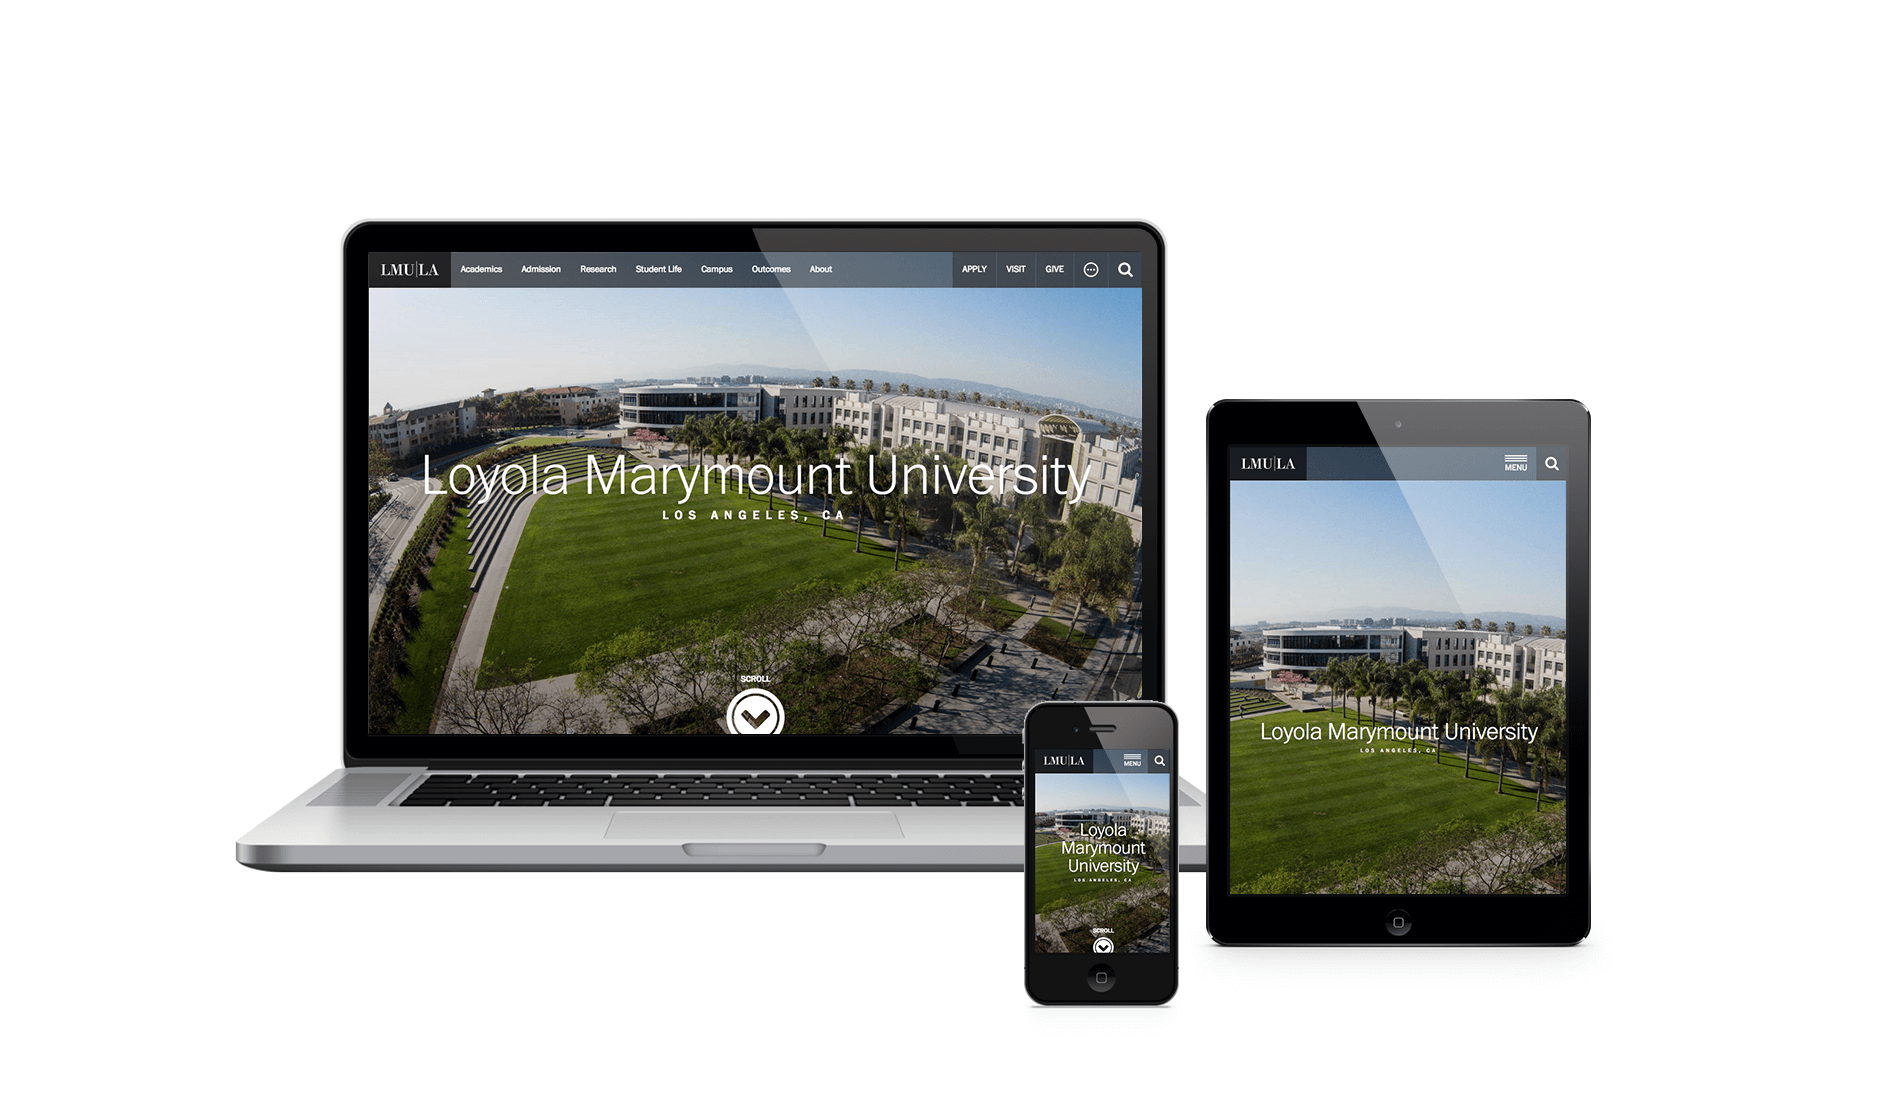 Loyola Marymount University  image